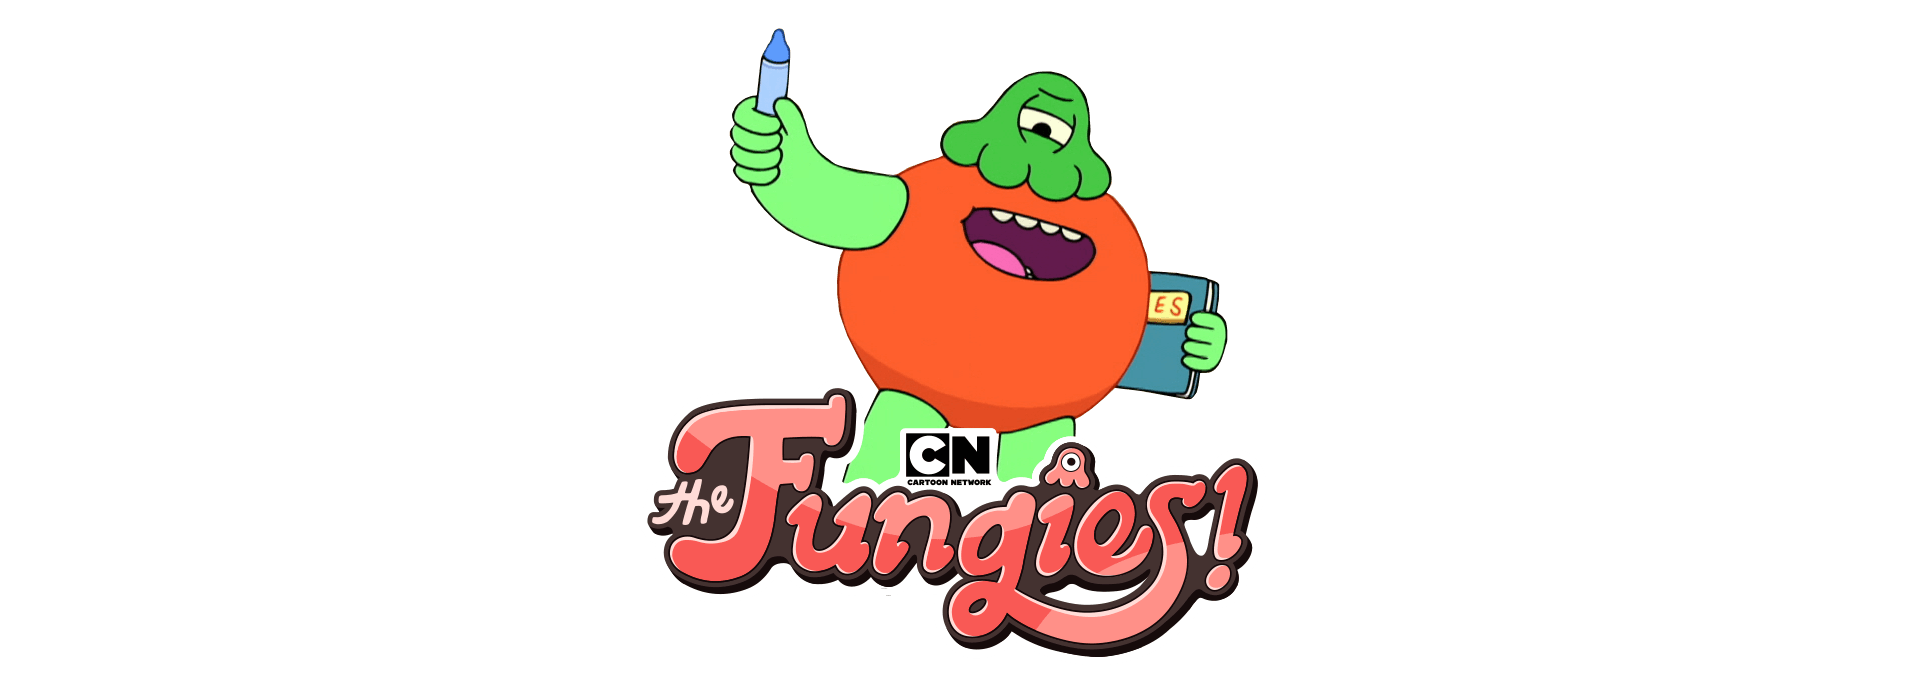 Cartoon Network Free Online Games Downloads Competitions Videos For Kids